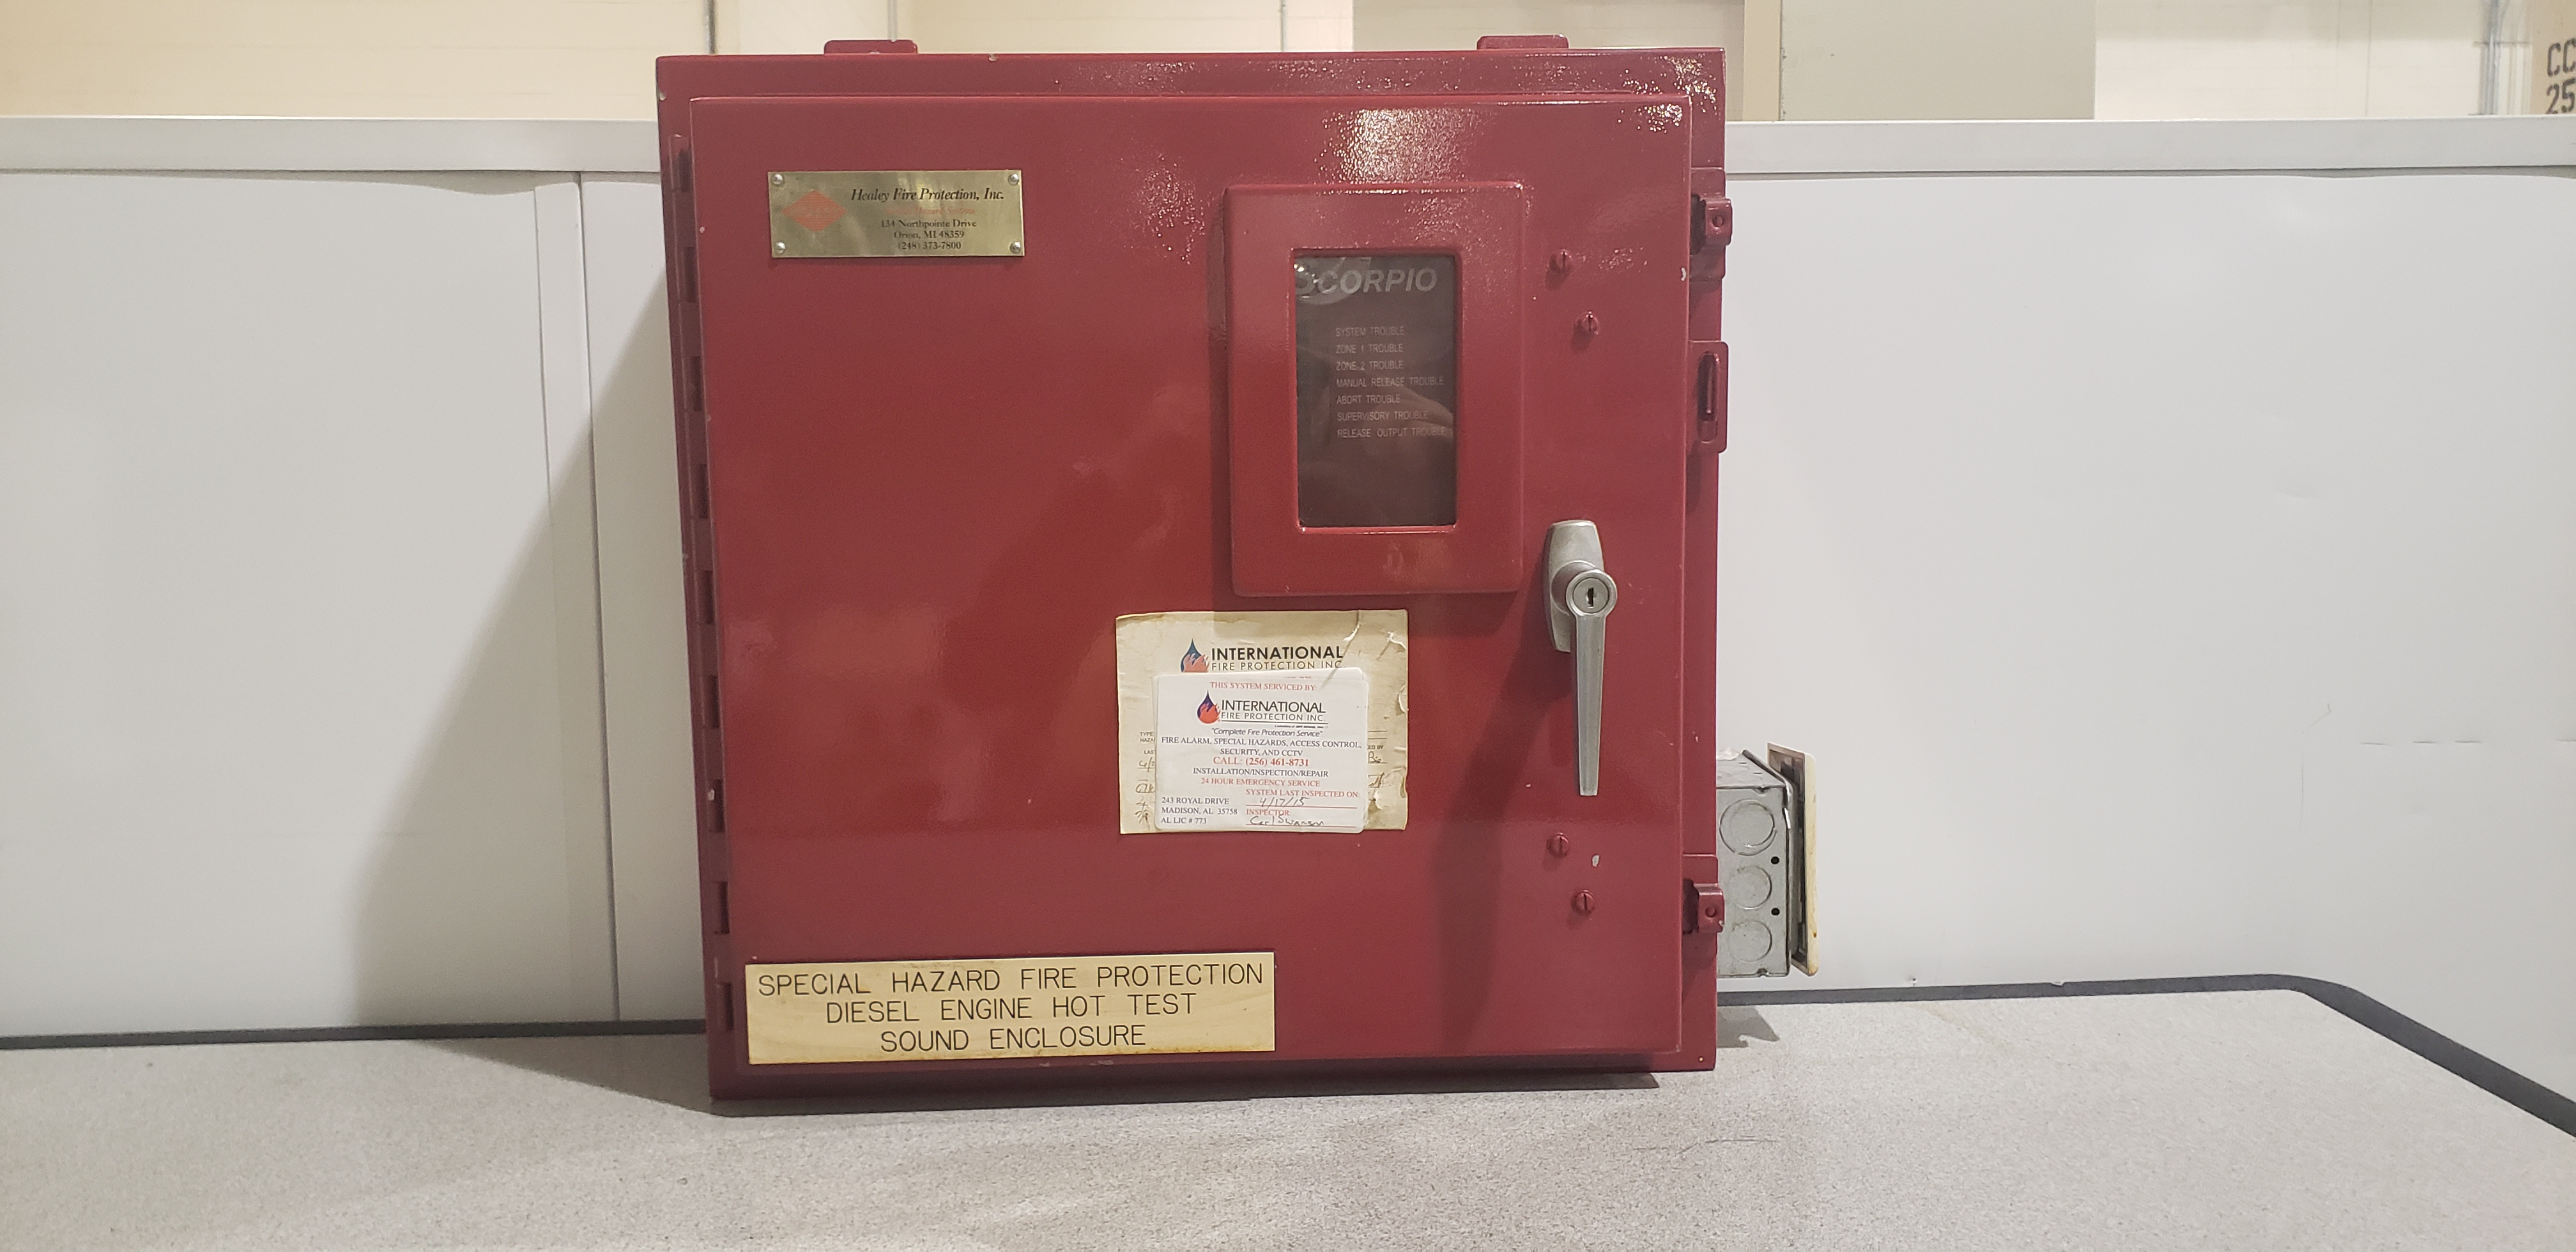 Kidde Scorpio Fire Control Unit 84-232000-102